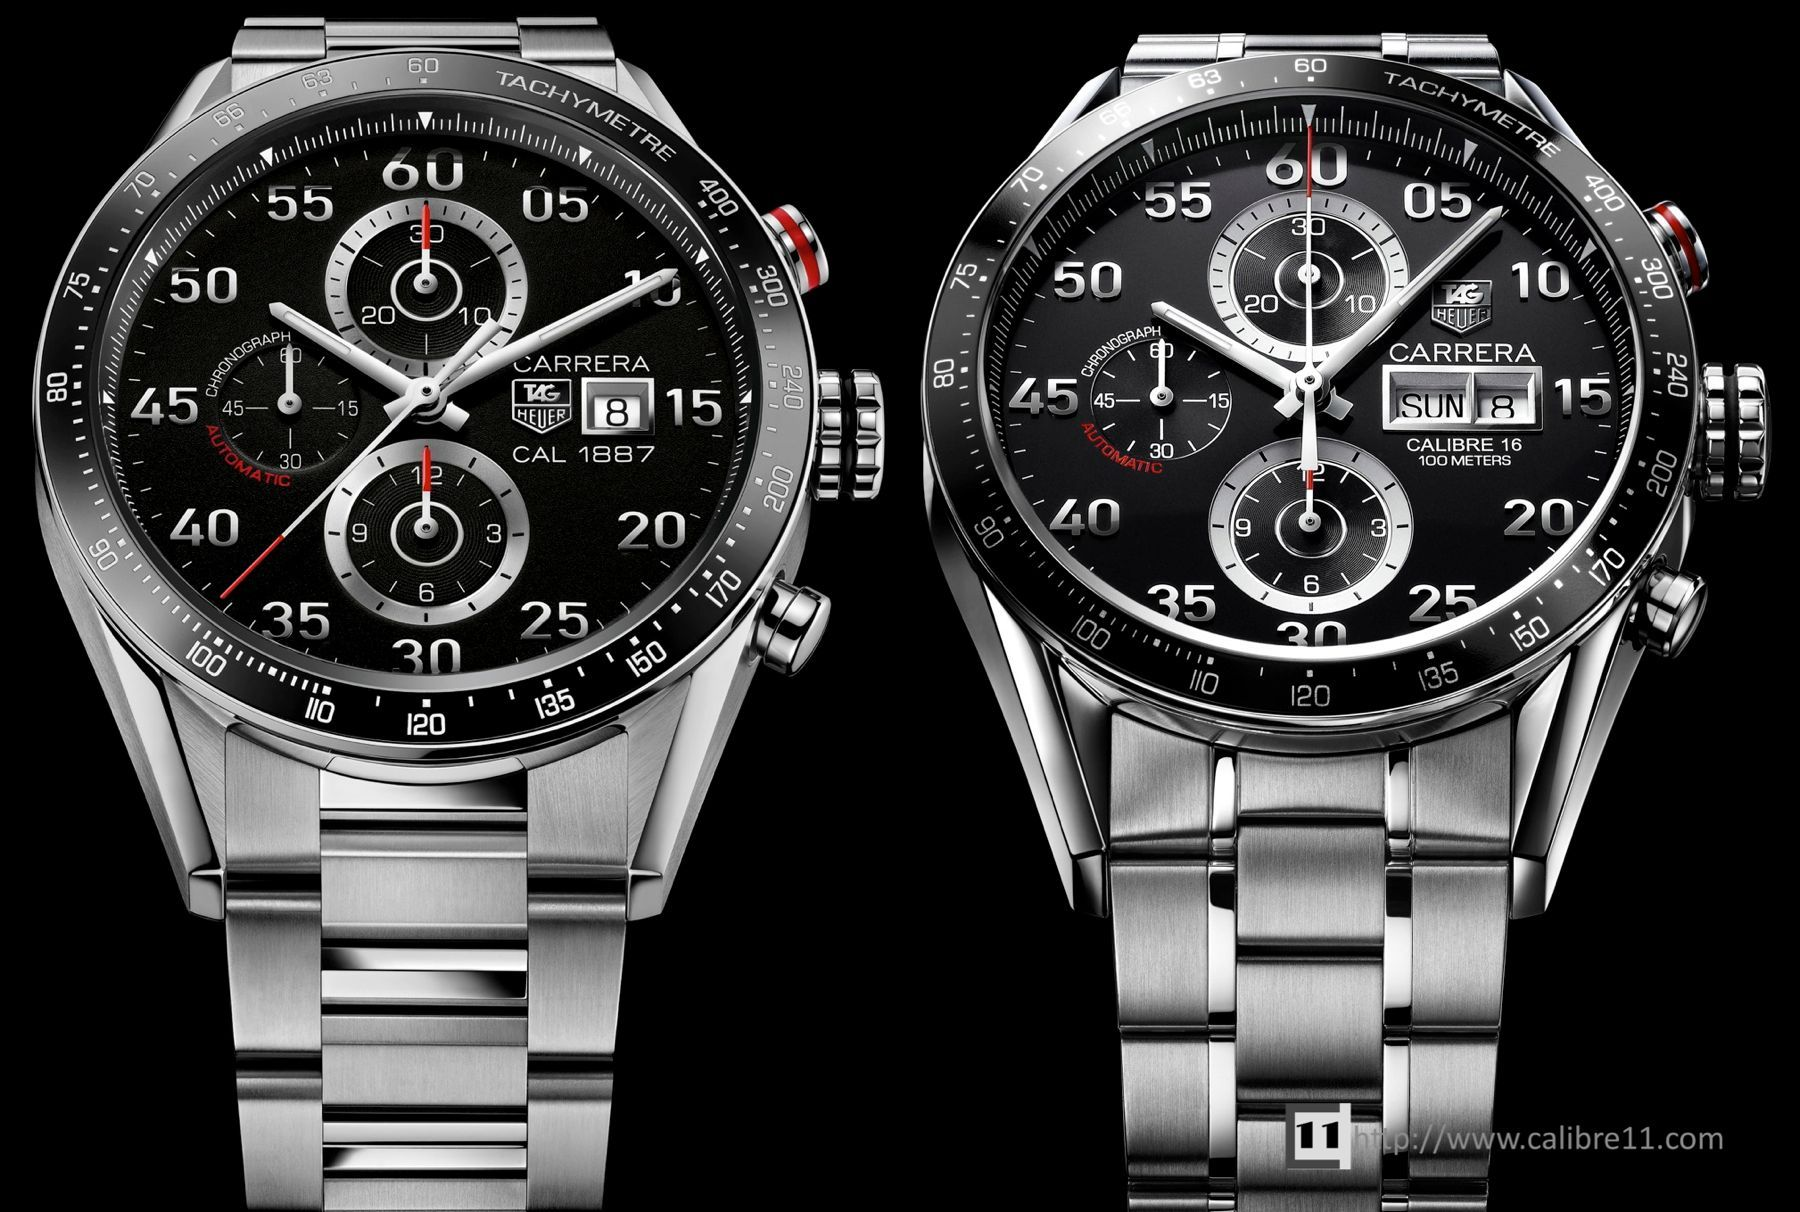 254b71a9d29 Calibre 16 vs. Calibre 1887 Tag Heuer Carrera Automatic